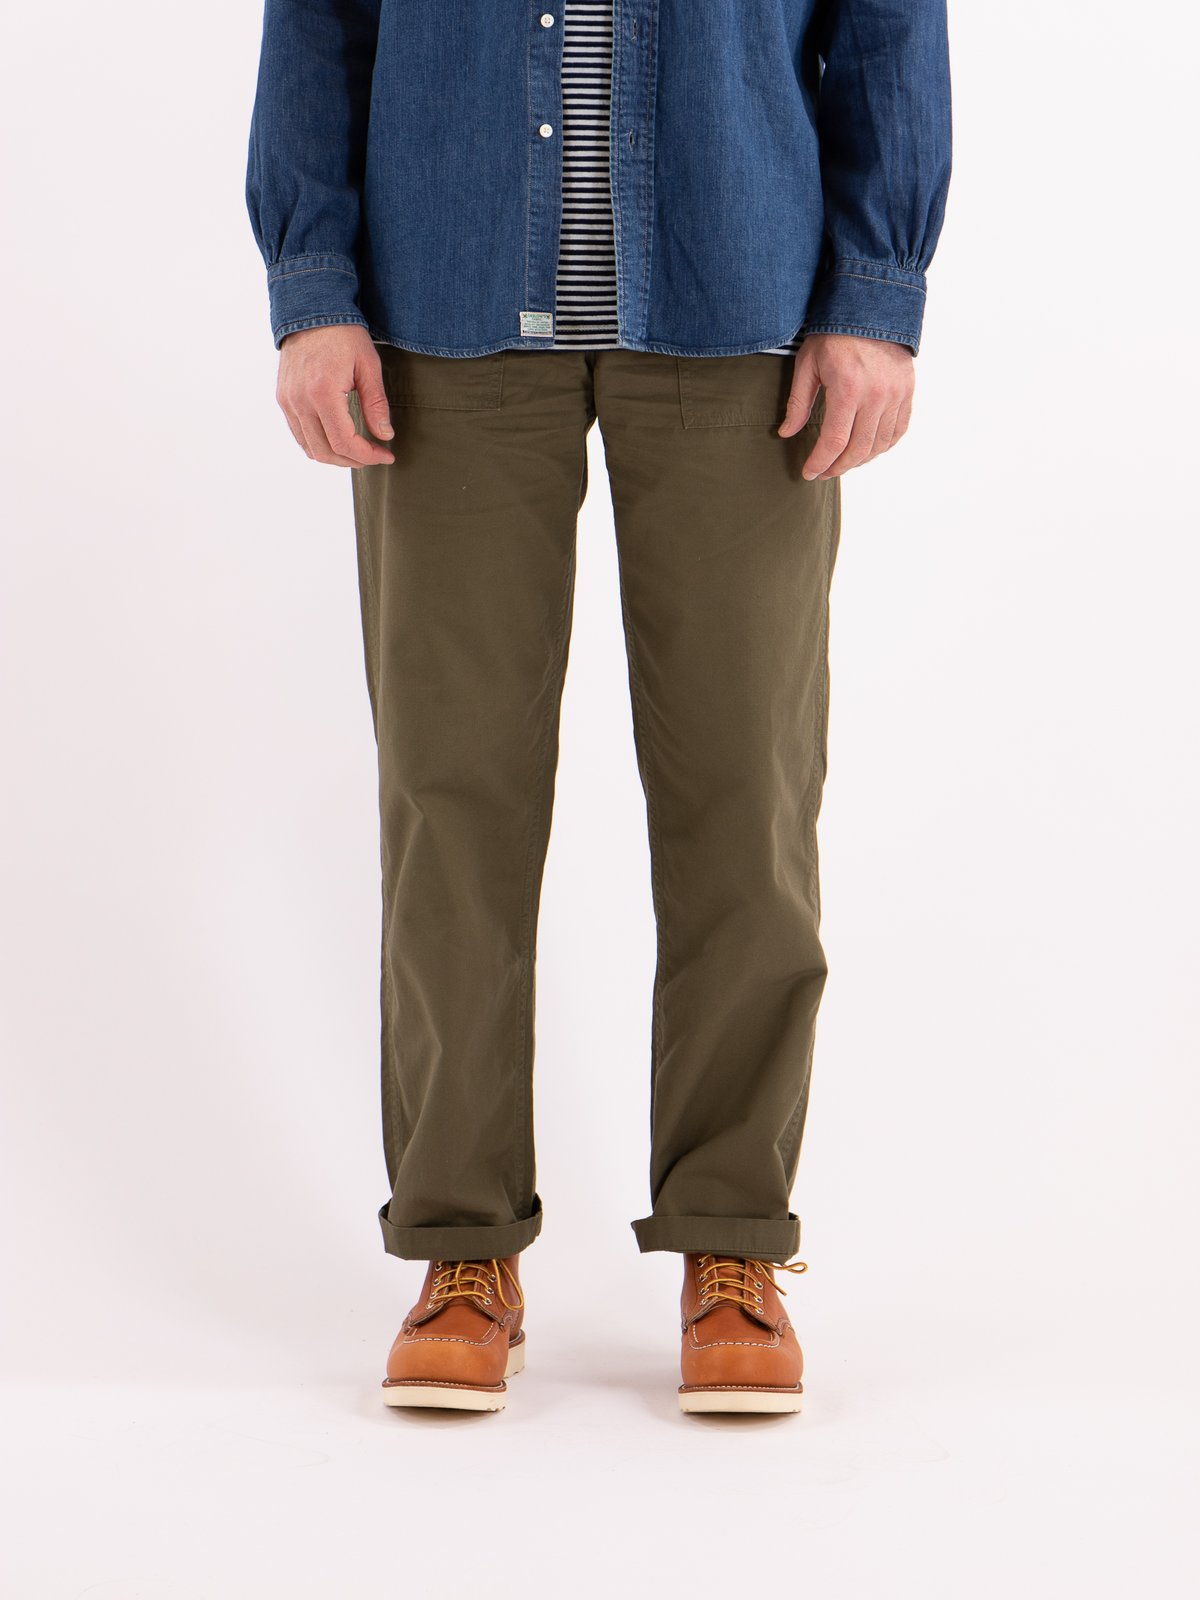 Army Green Ripstop Regular Fit US Army Fatigue Pant - Image 2